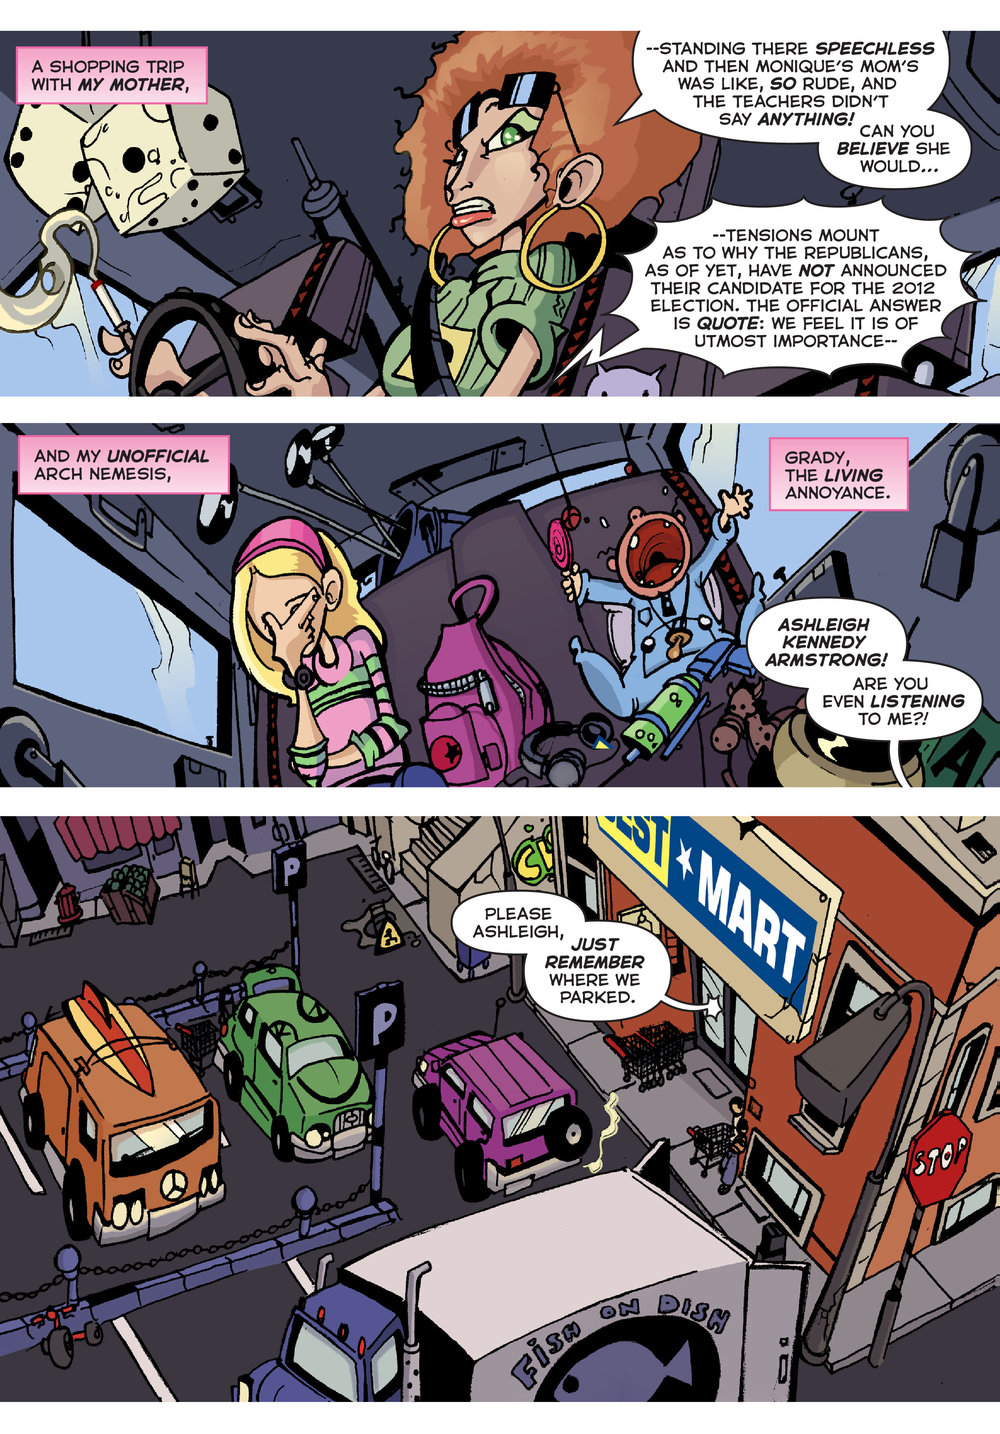 Pink Power 1 page 2.jpg